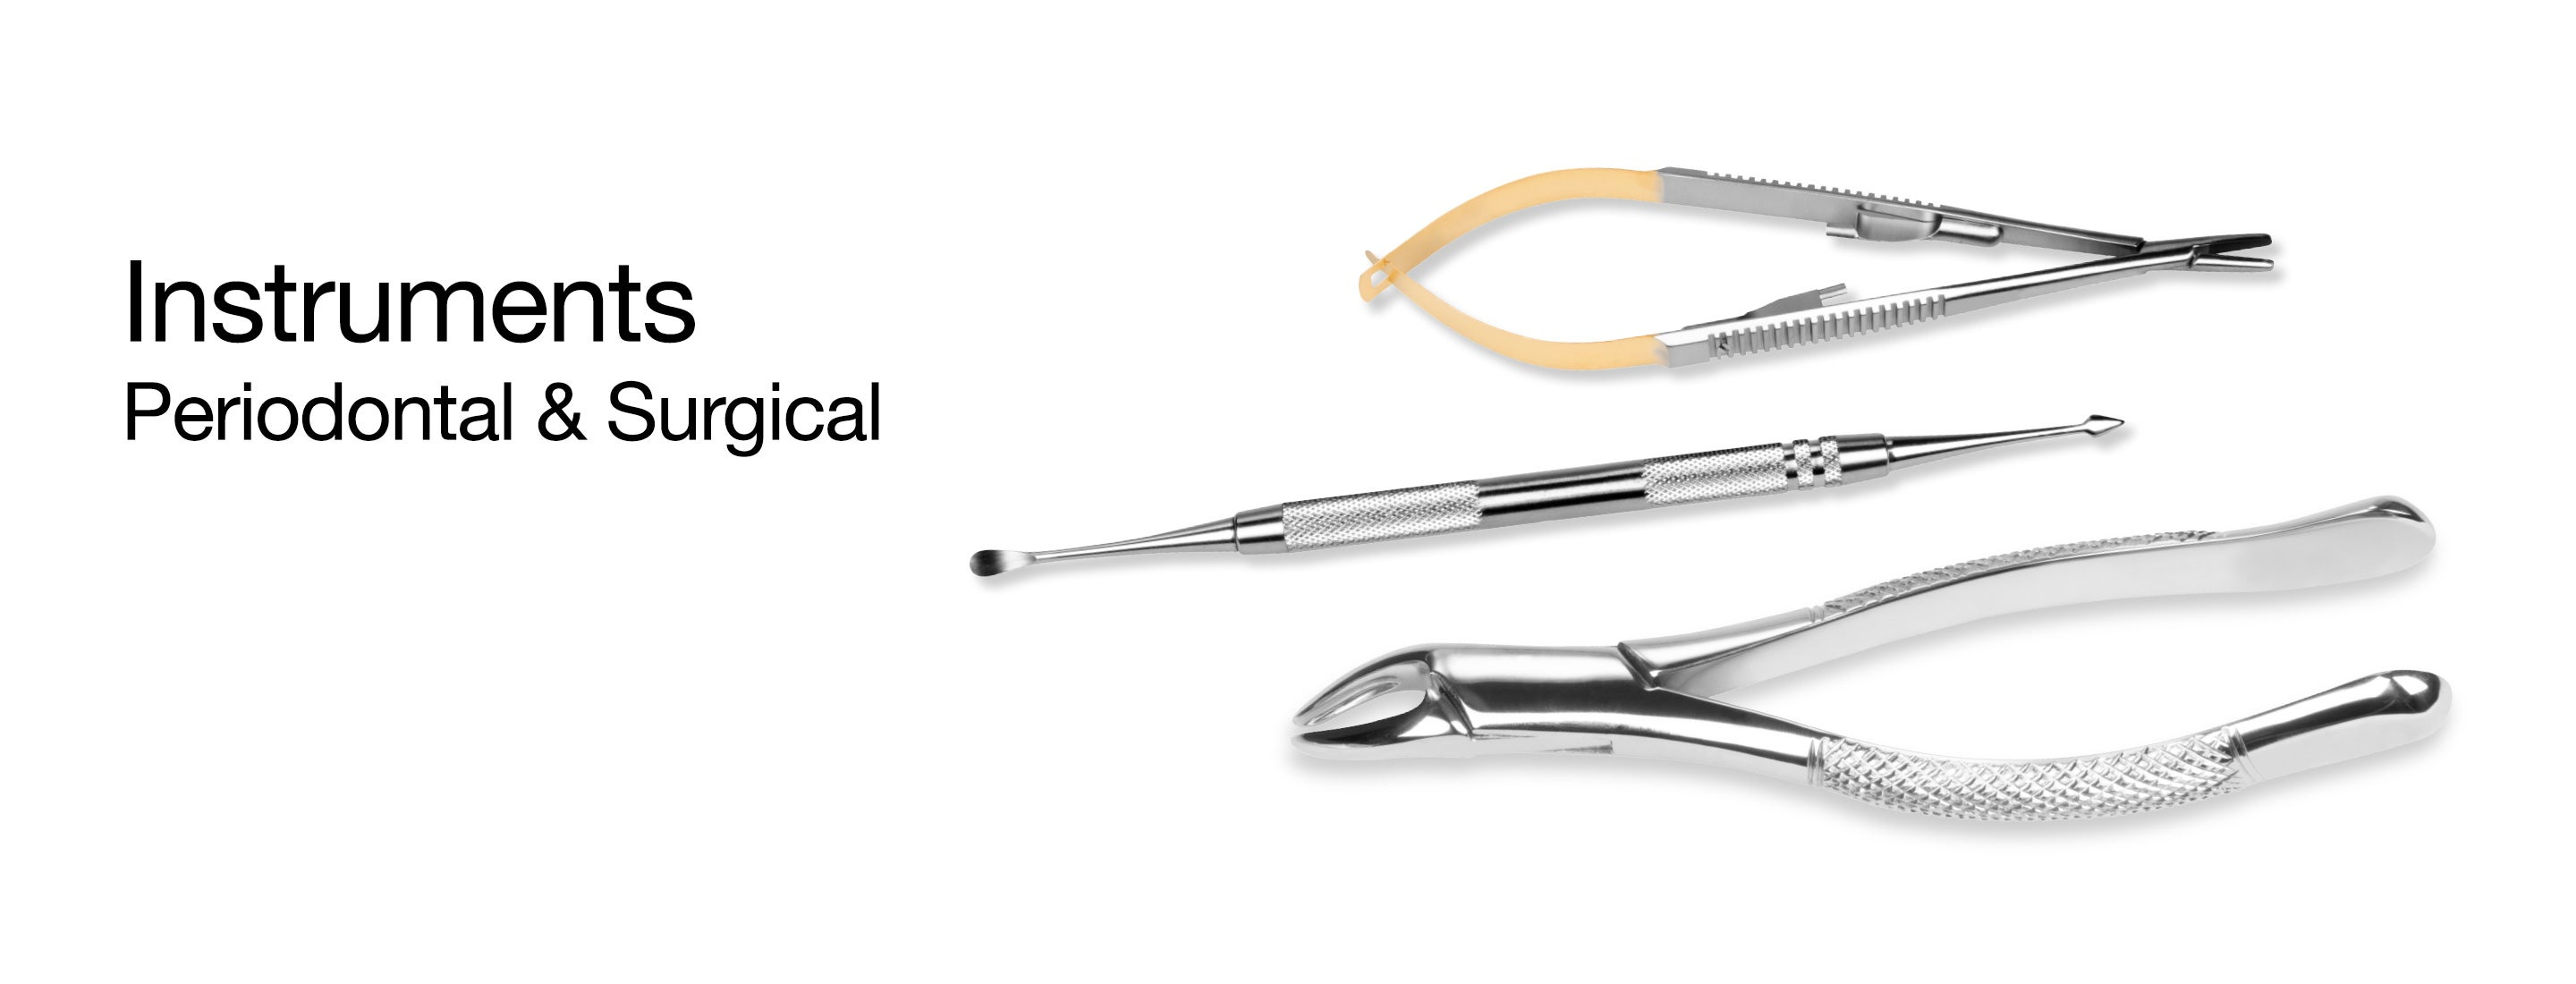 Carefully crafted by skilled professionals, DenMat's Hartzell® peridontal & surgical instruments have maintained the same high standards of manufacturing excellence established by their founders in 1935.